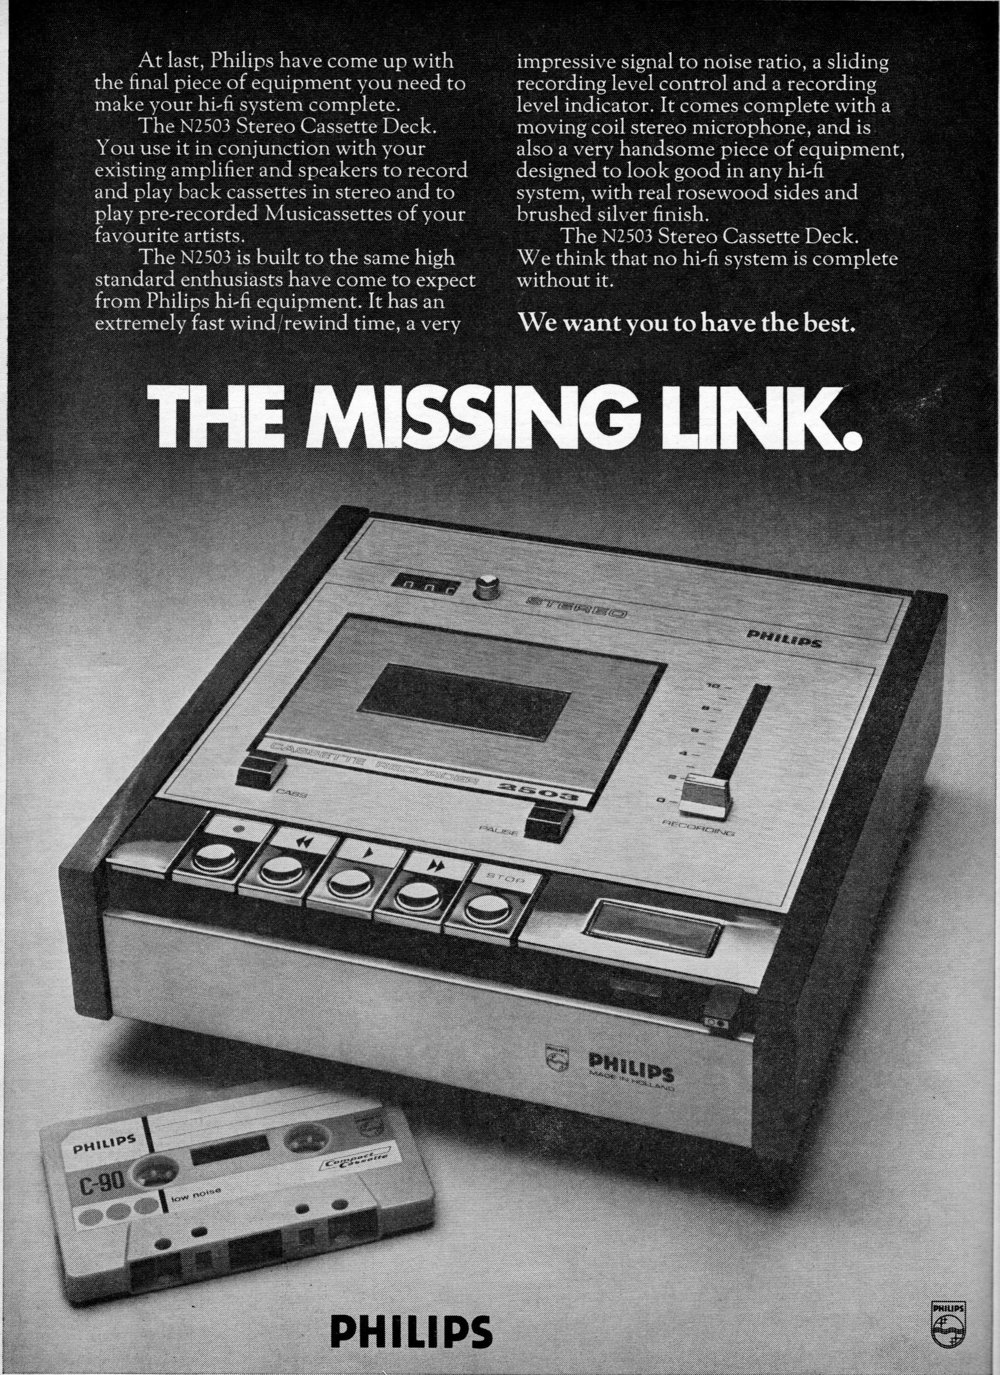 Philips N2503 Advert 1971.jpg